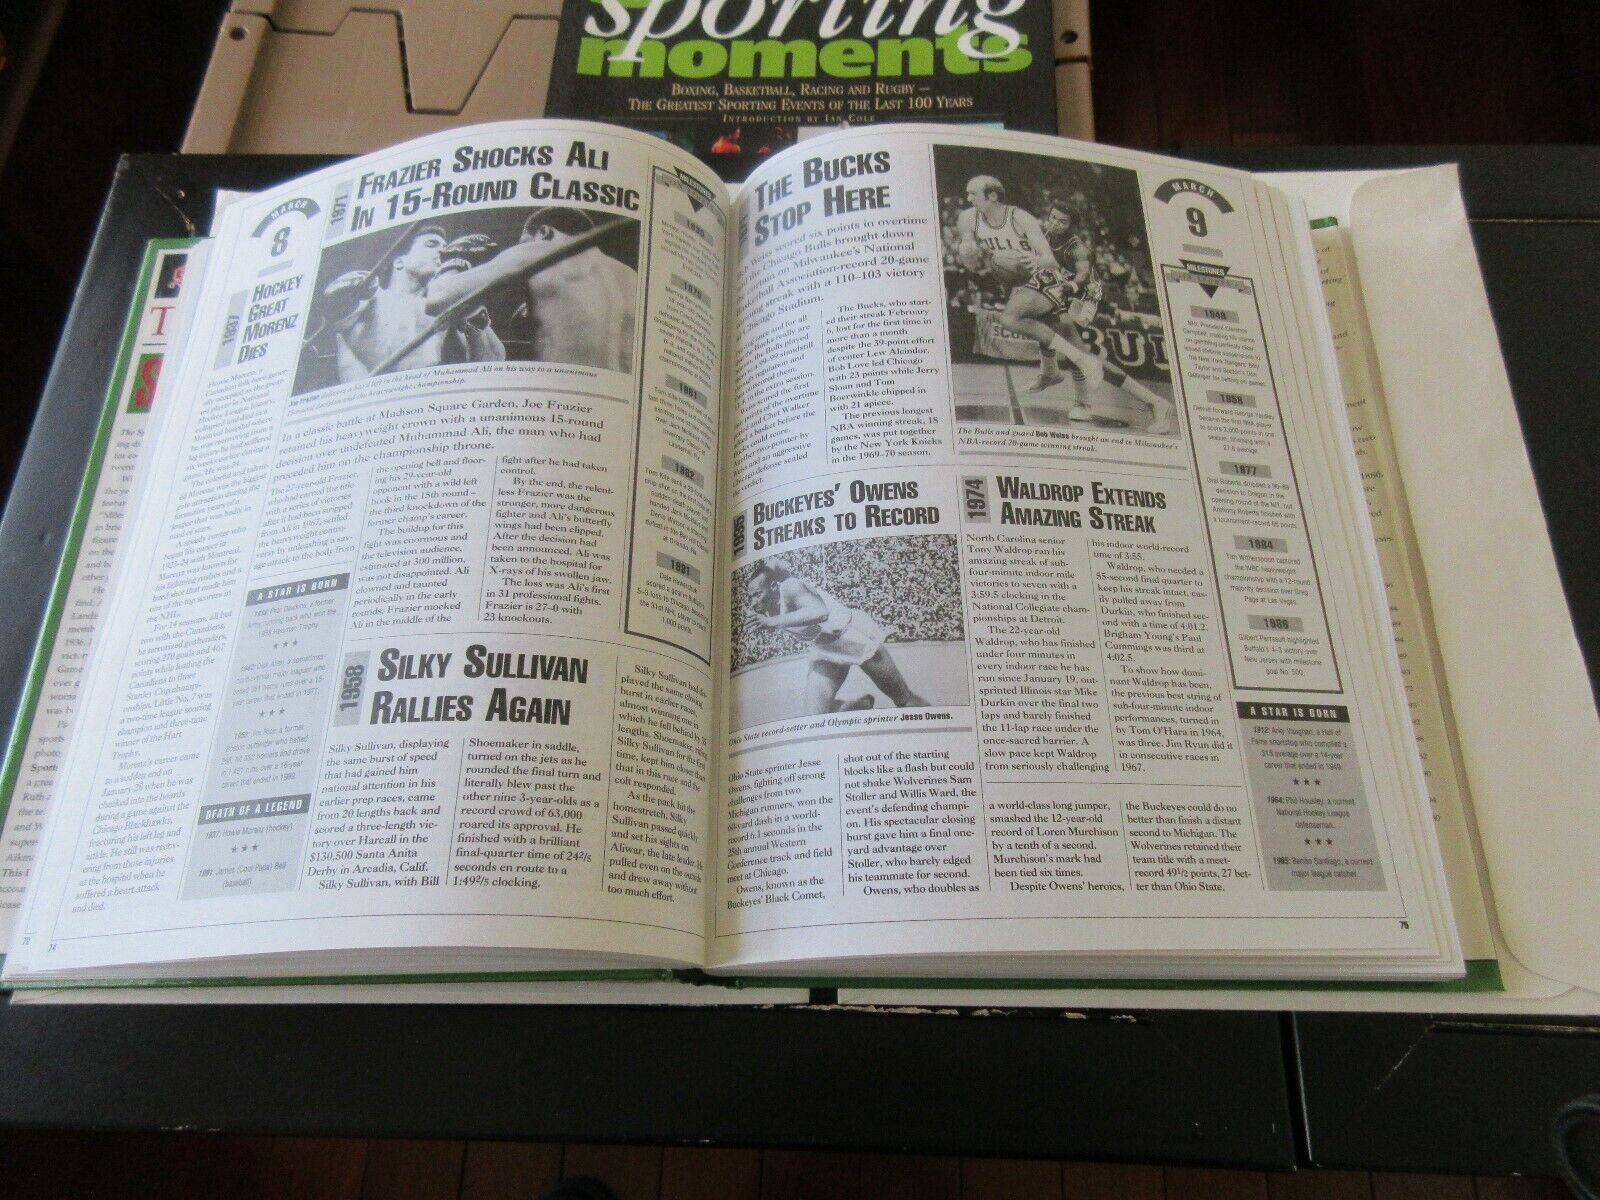 THE SPORTING NEWS THIS DAY IN SPORTS , a day-by-day rec